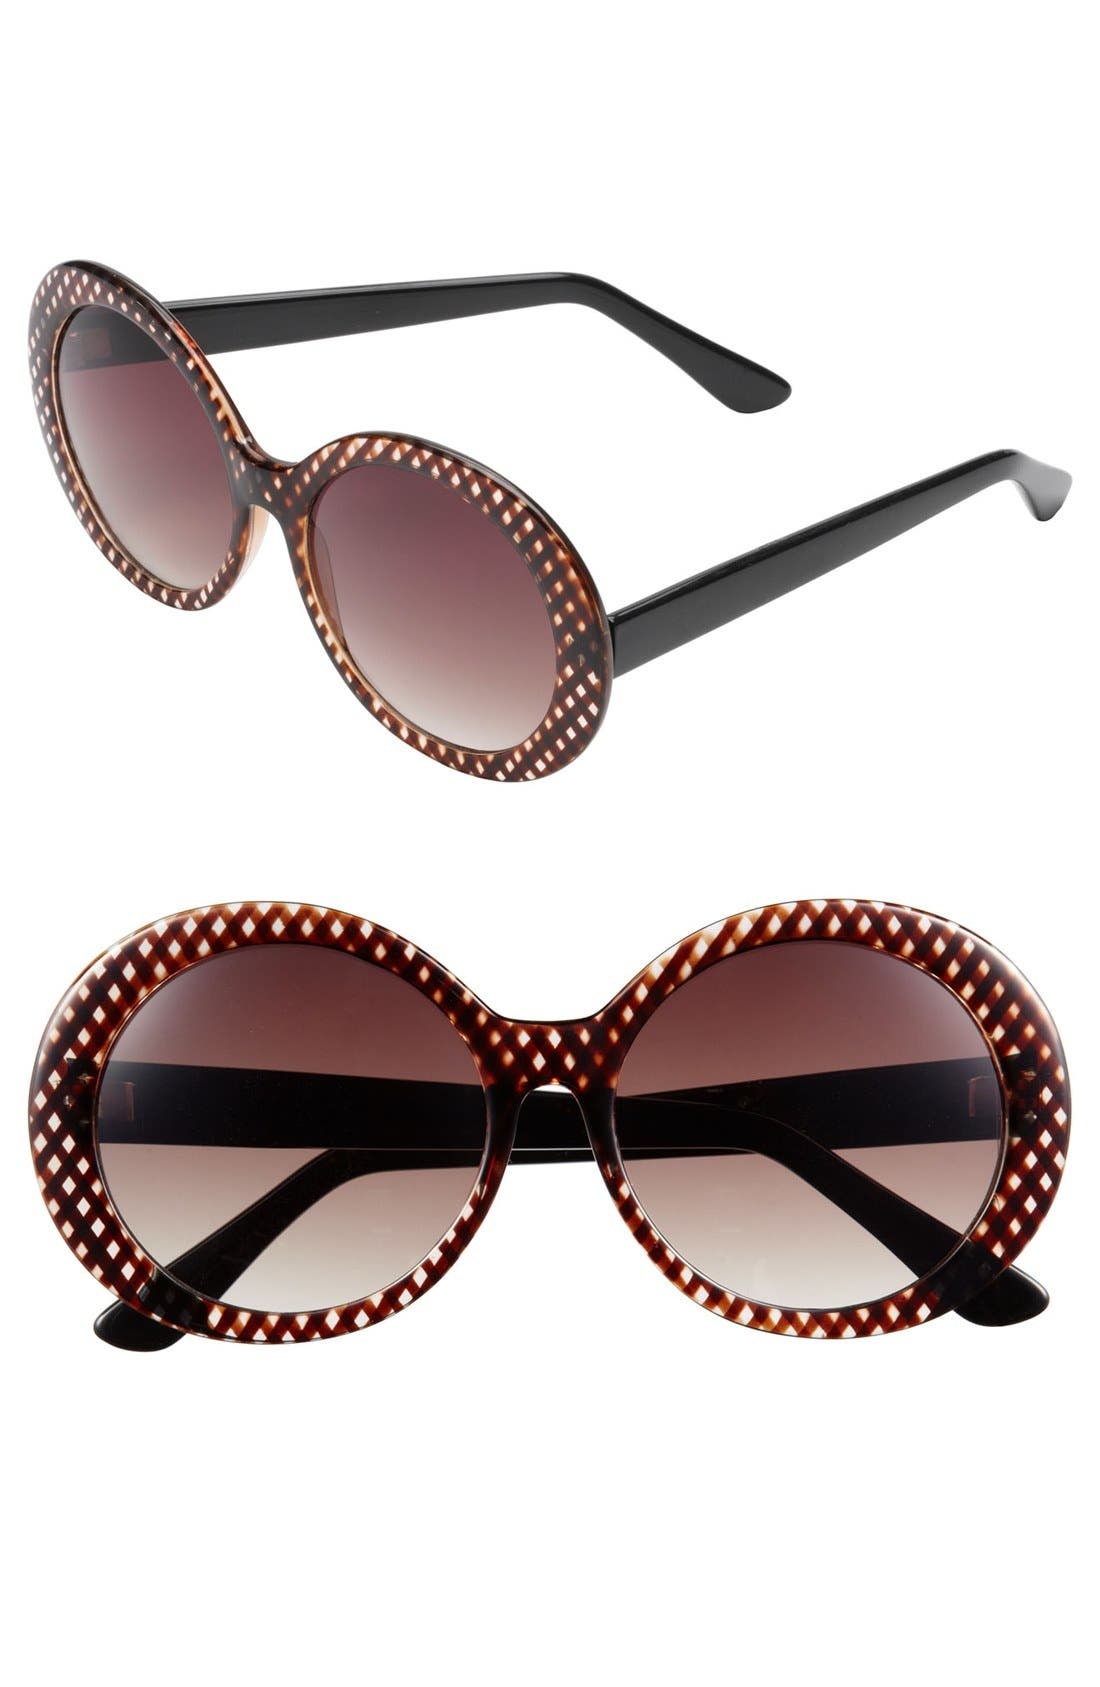 Main Image - Outlook Eyewear 'La Jolla' Sunglasses